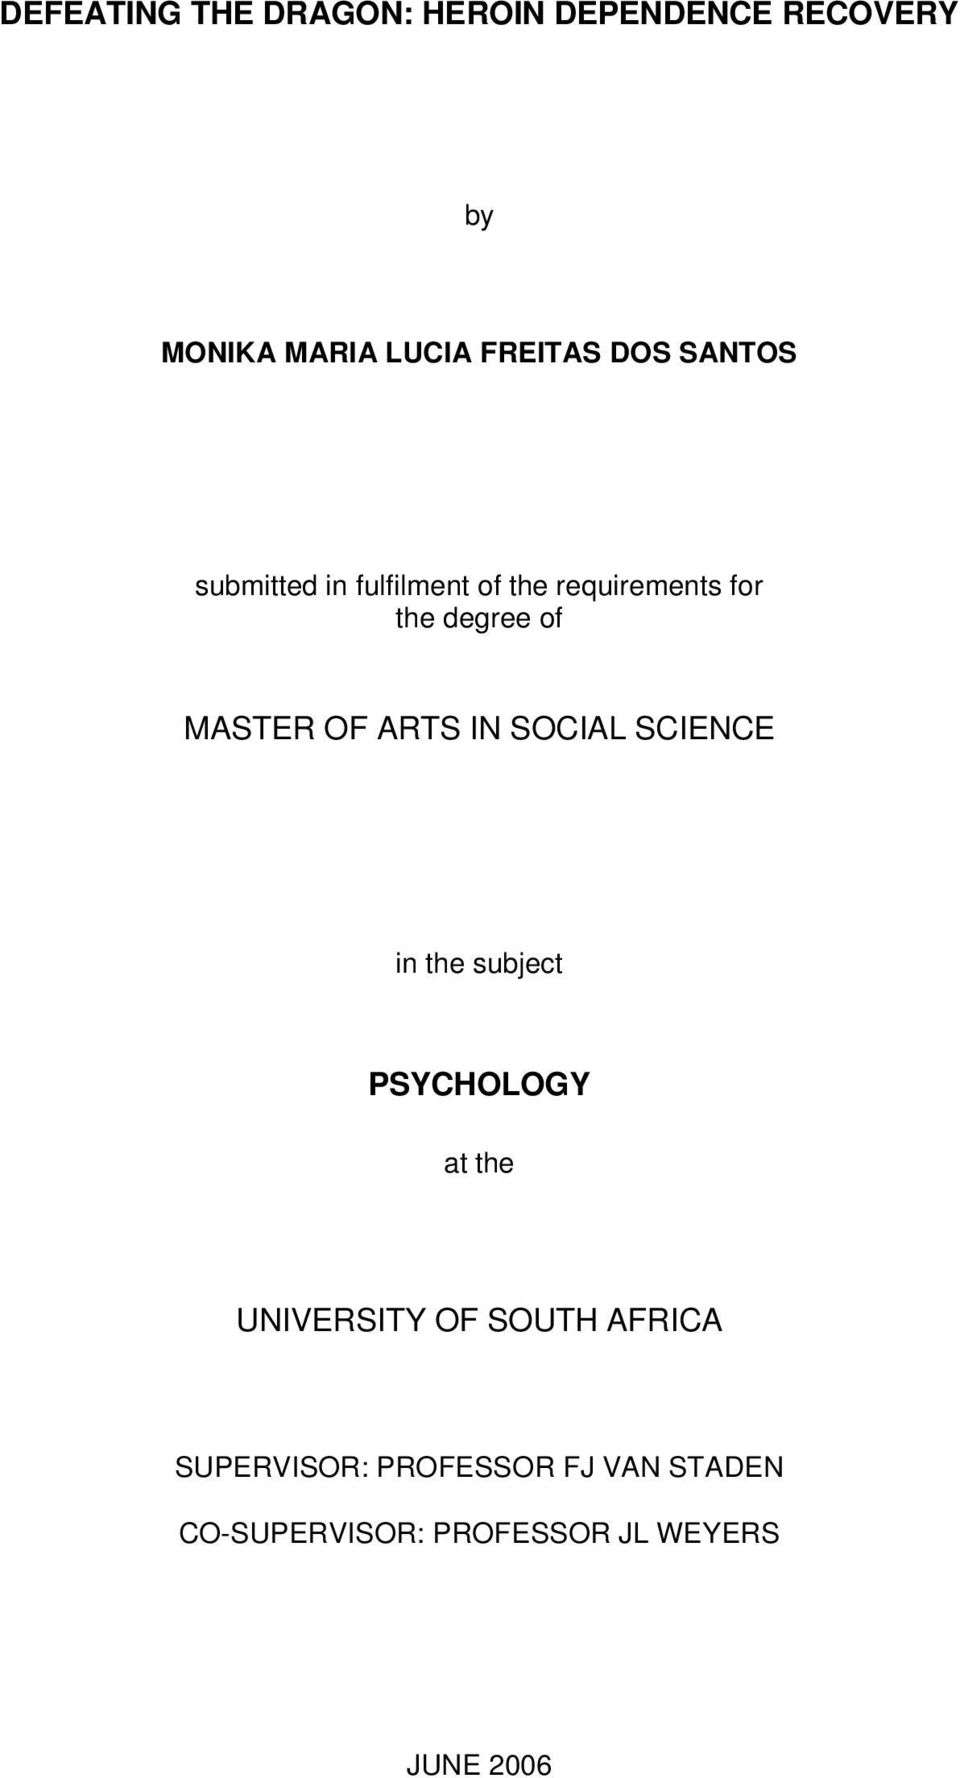 OF ARTS IN SOCIAL SCIENCE in the subject PSYCHOLOGY at the UNIVERSITY OF SOUTH